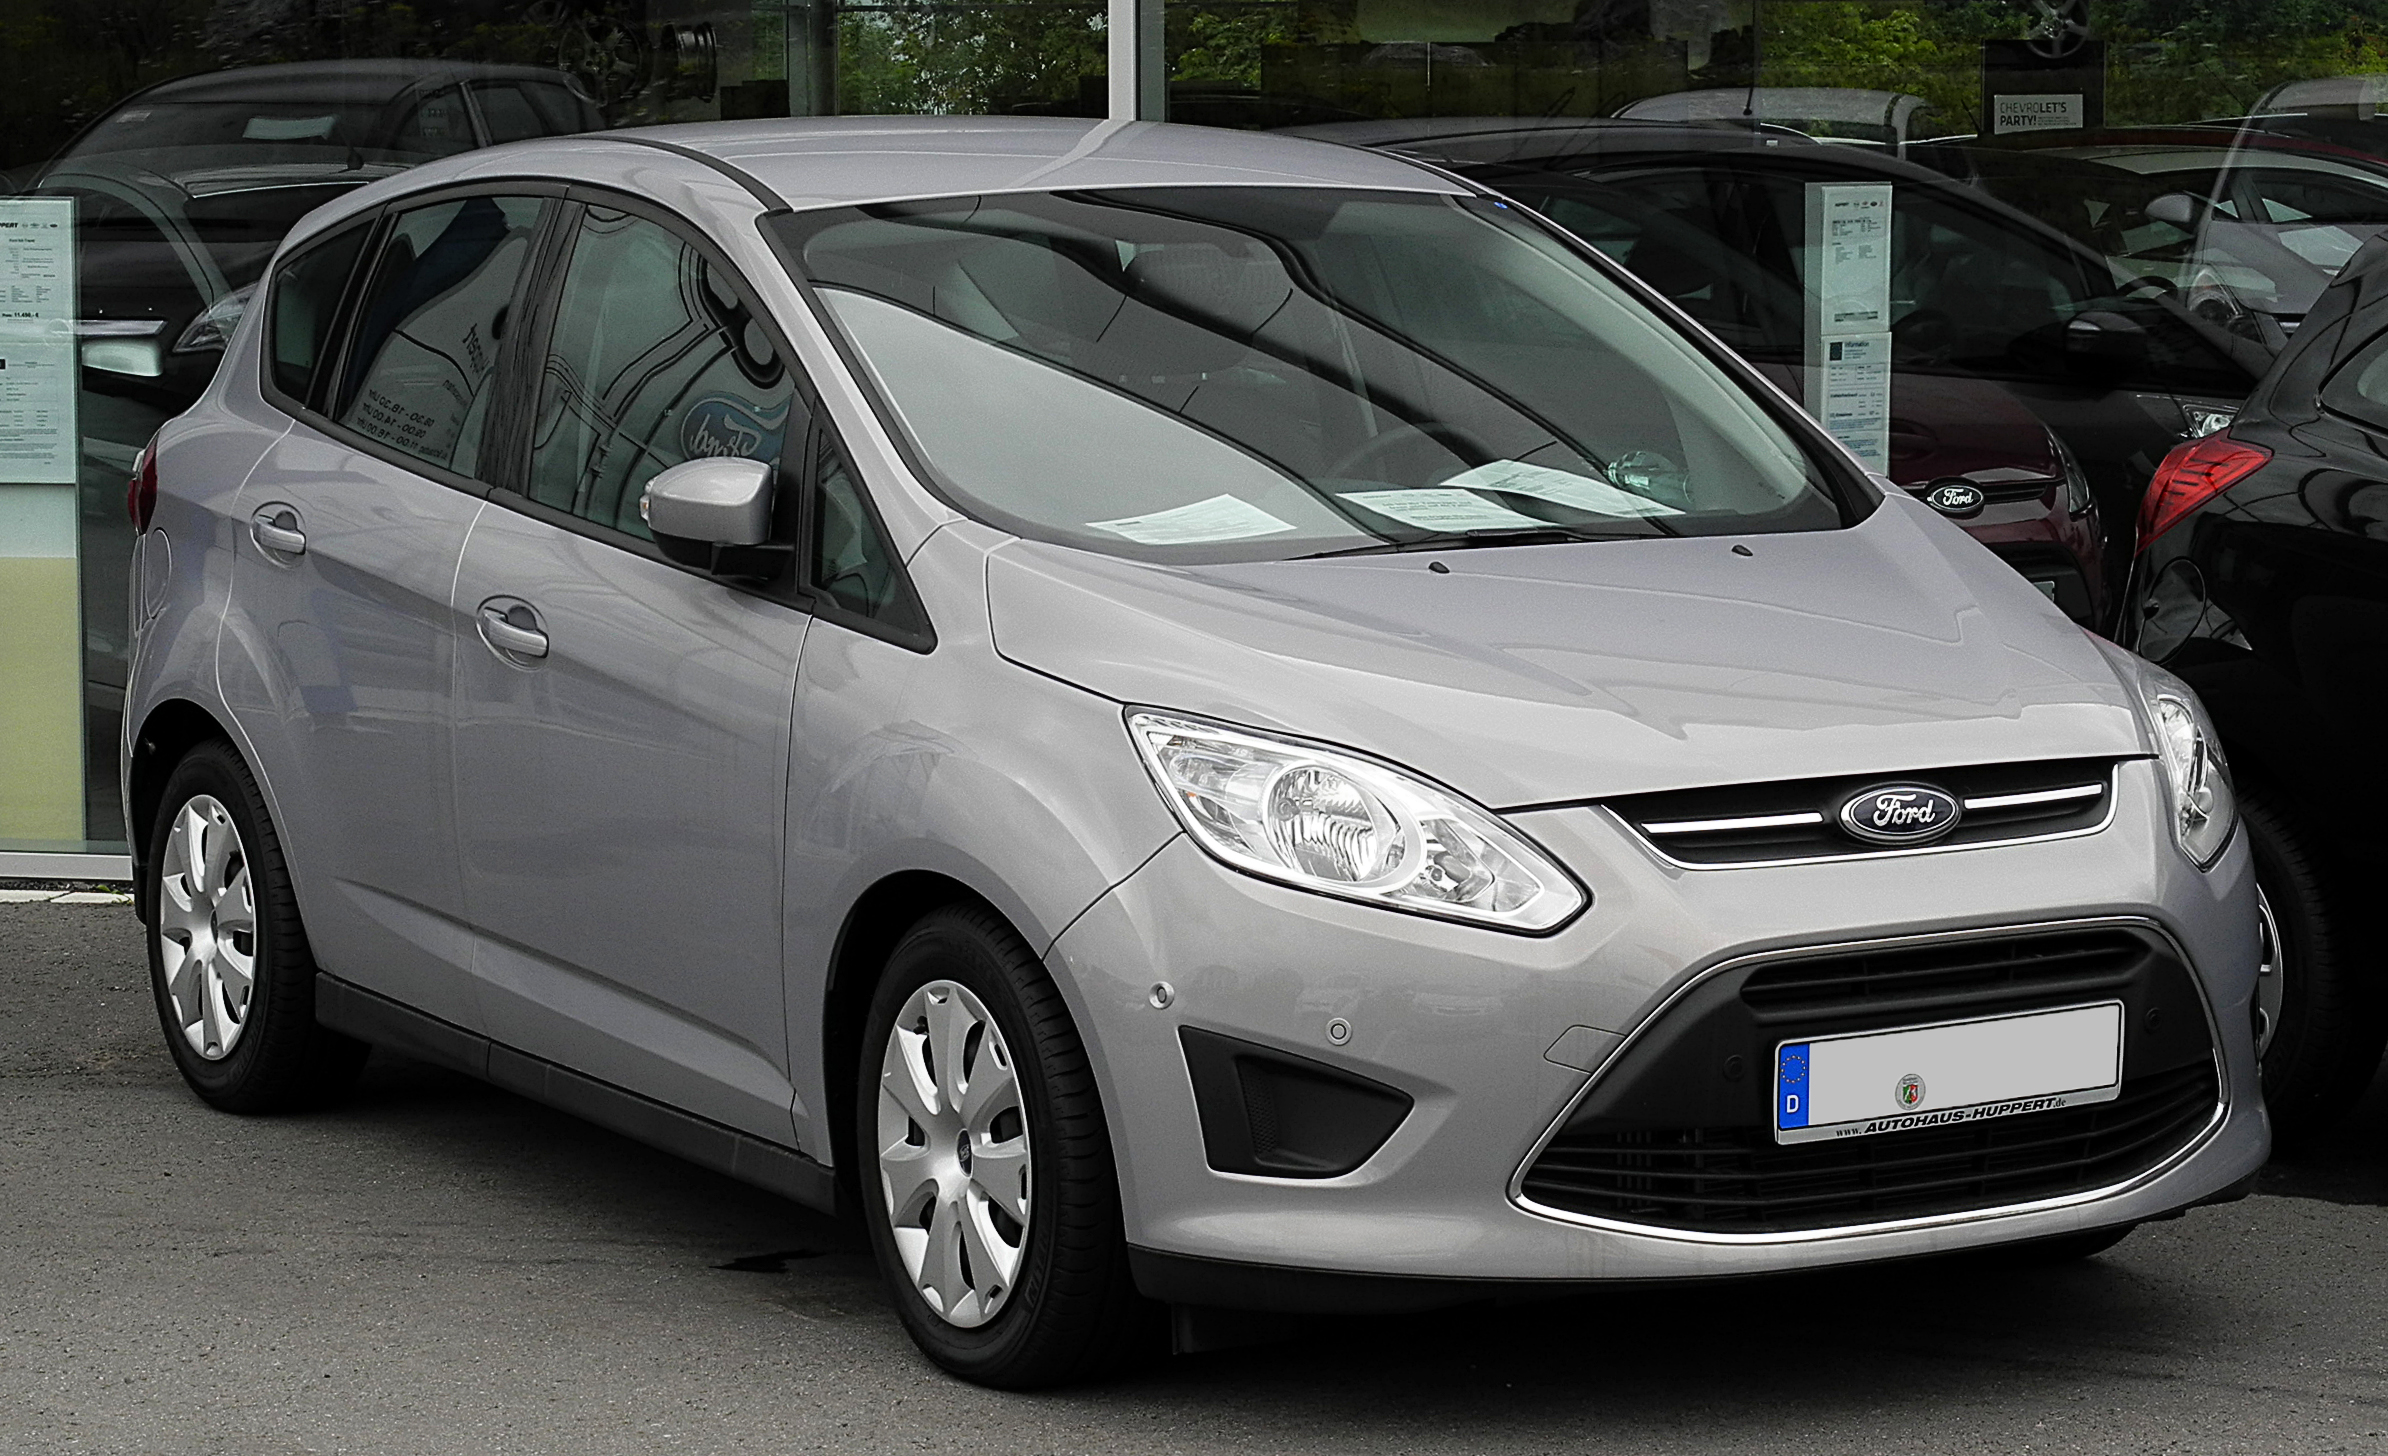 Ford C-max 1.6 Tdci File Ford C Max 1 6 Tdci Trend Ii Frontansicht 30